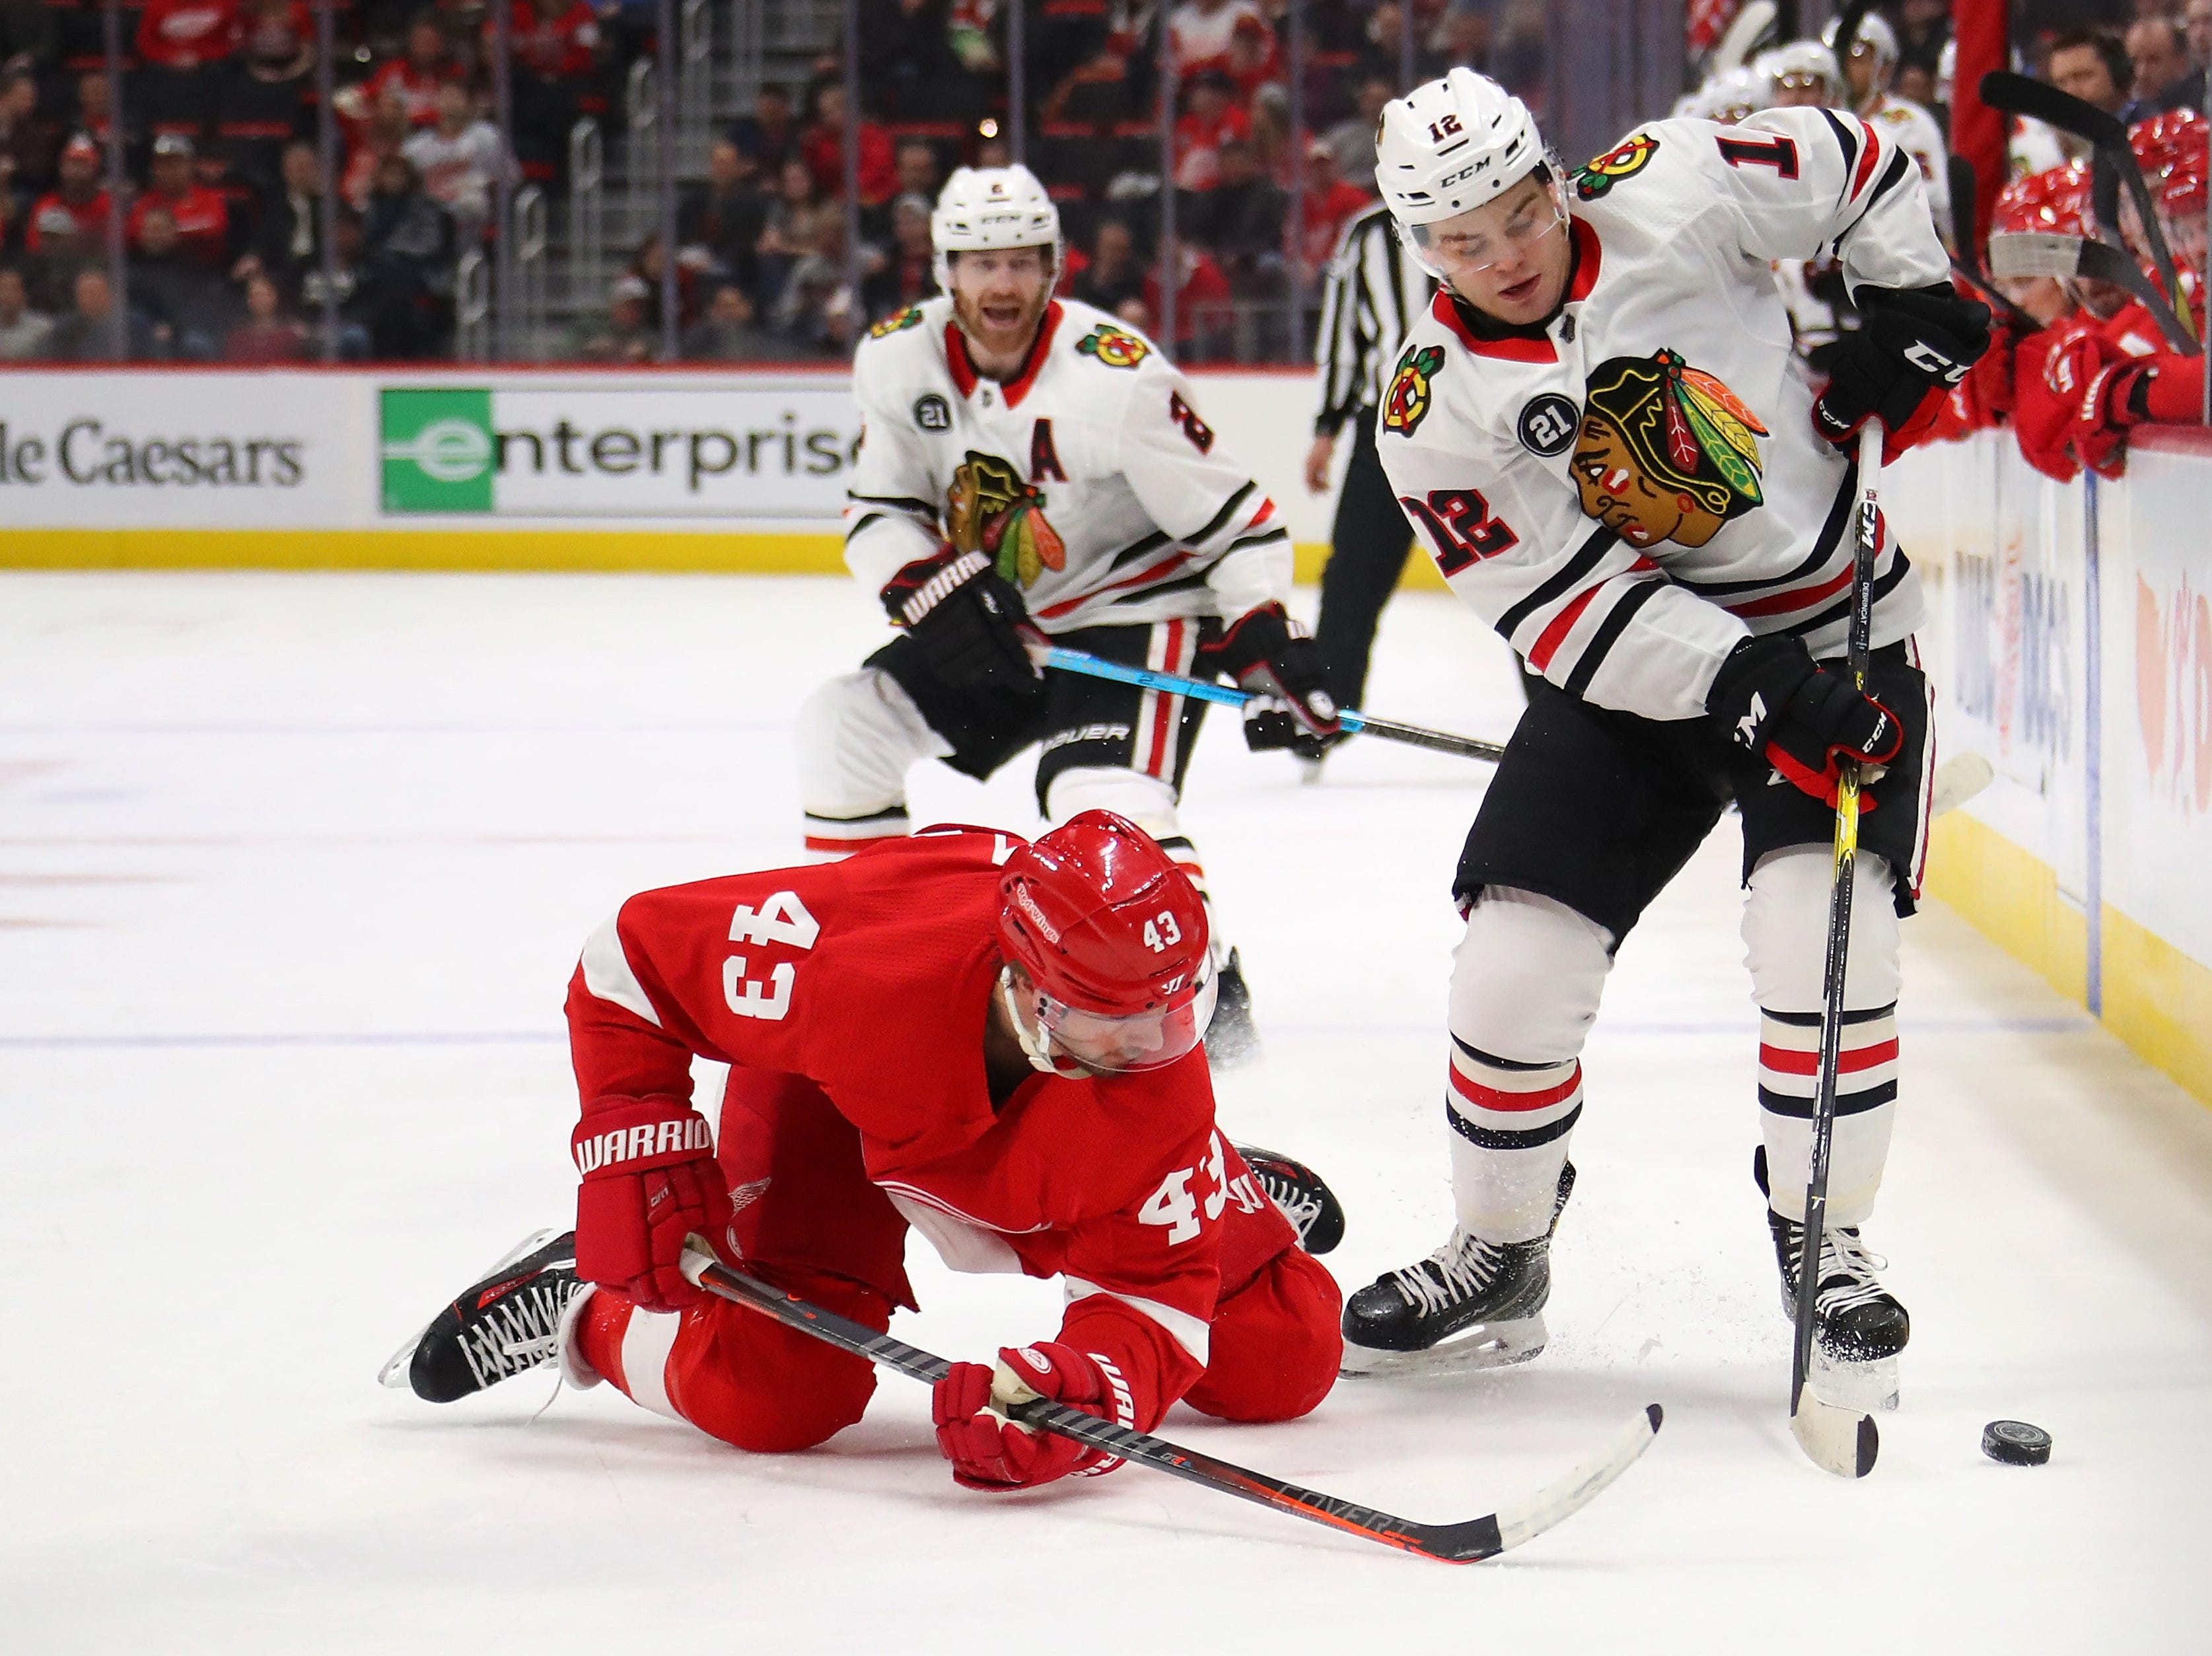 Alex DeBrincat #12 of the Chicago Blackhawks tries to gain control of the puck next to Darren Helm #43 of the Detroit Red Wings during the first period at Little Caesars Arena on February 20, 2019 in Detroit, Michigan.